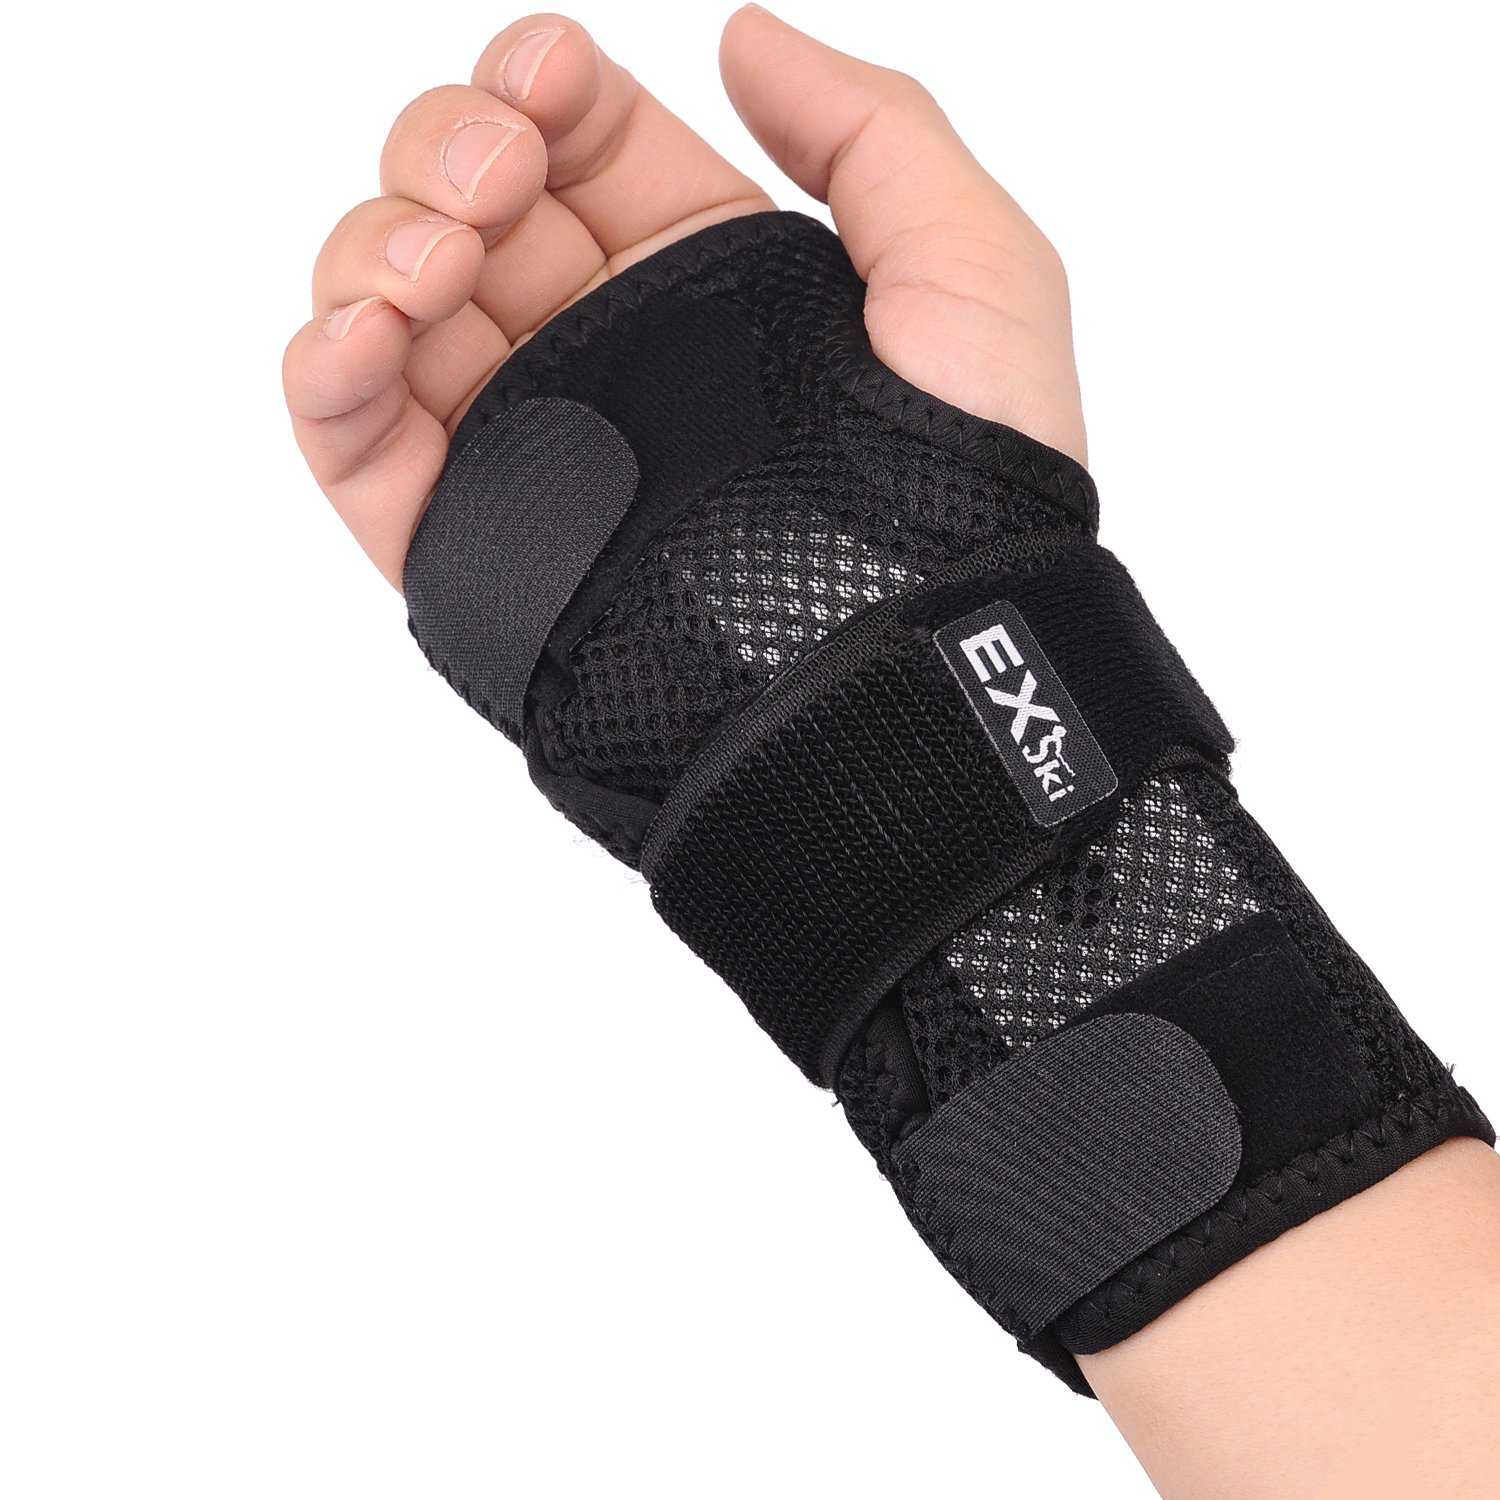 EXski Double Wrist Splints Compression Hand Support Brace for Carpal Tunnel Syndrome Tendonitis Sprains Right Or Left Hand 1 Piece Removable Left Small